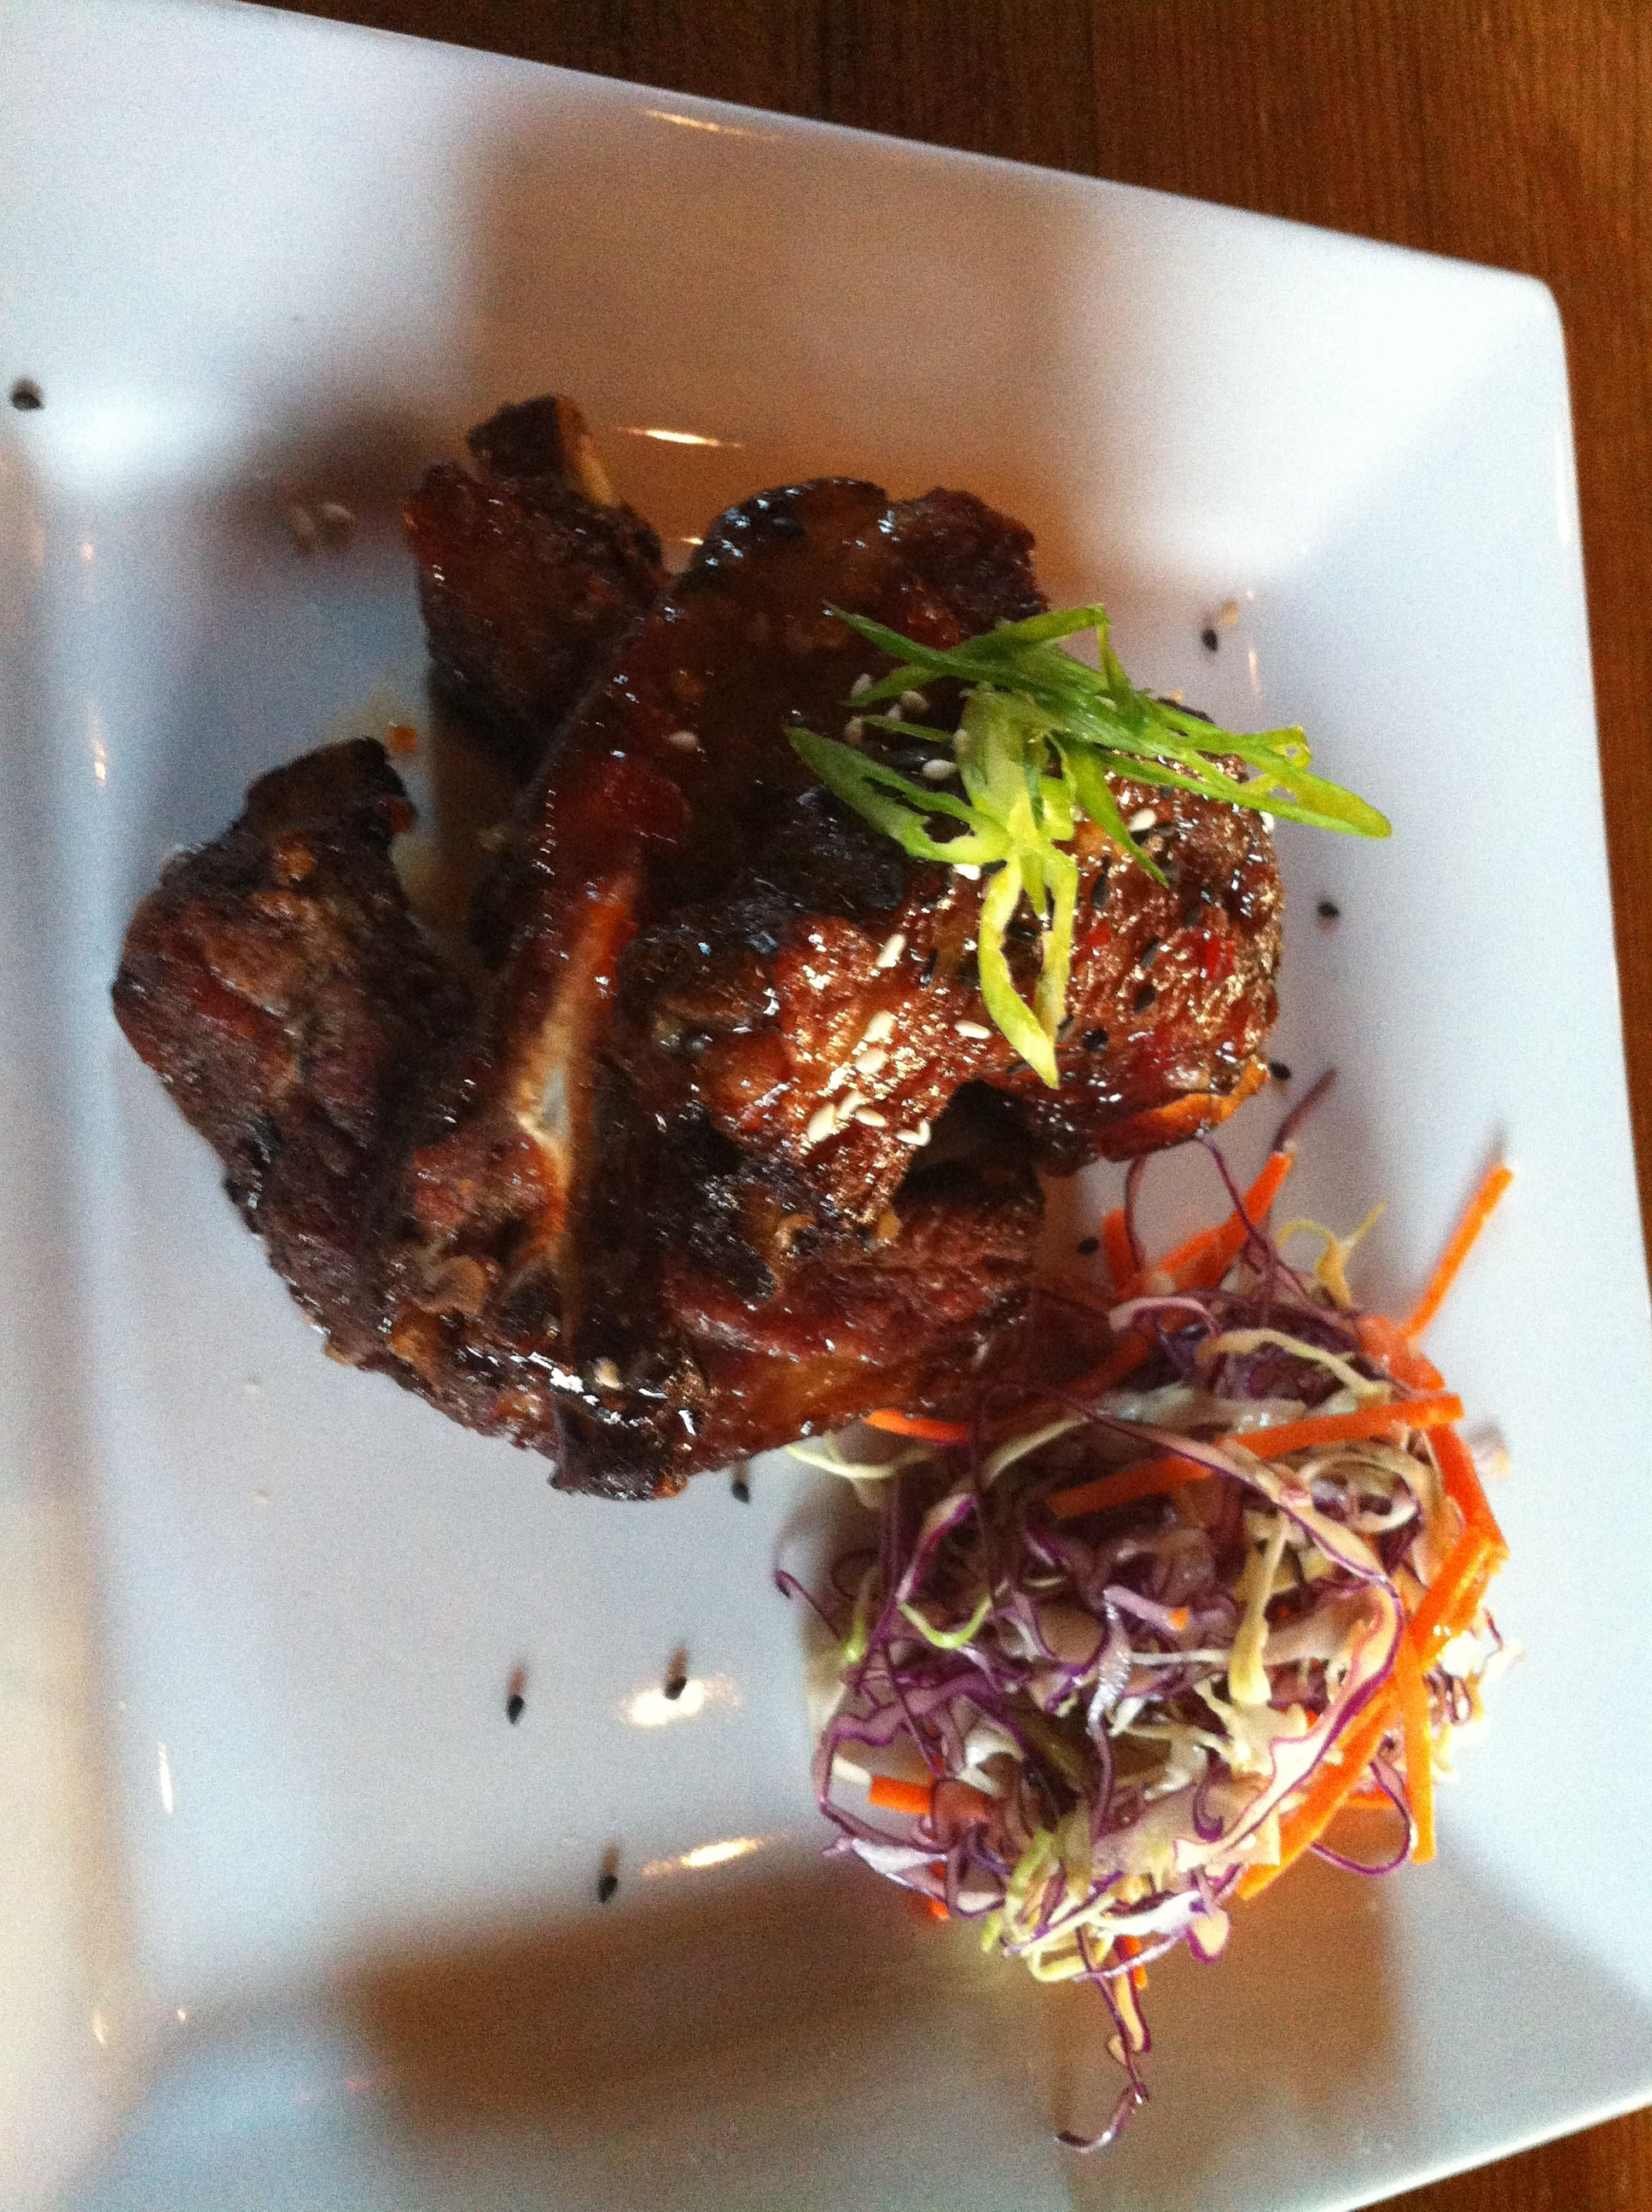 Alexander's at Timber Cove Inn. Beer Braised Baby Back Ribs with a Sweet Chili Glaze. Served with Thai Slaw. Off the hook delicious.